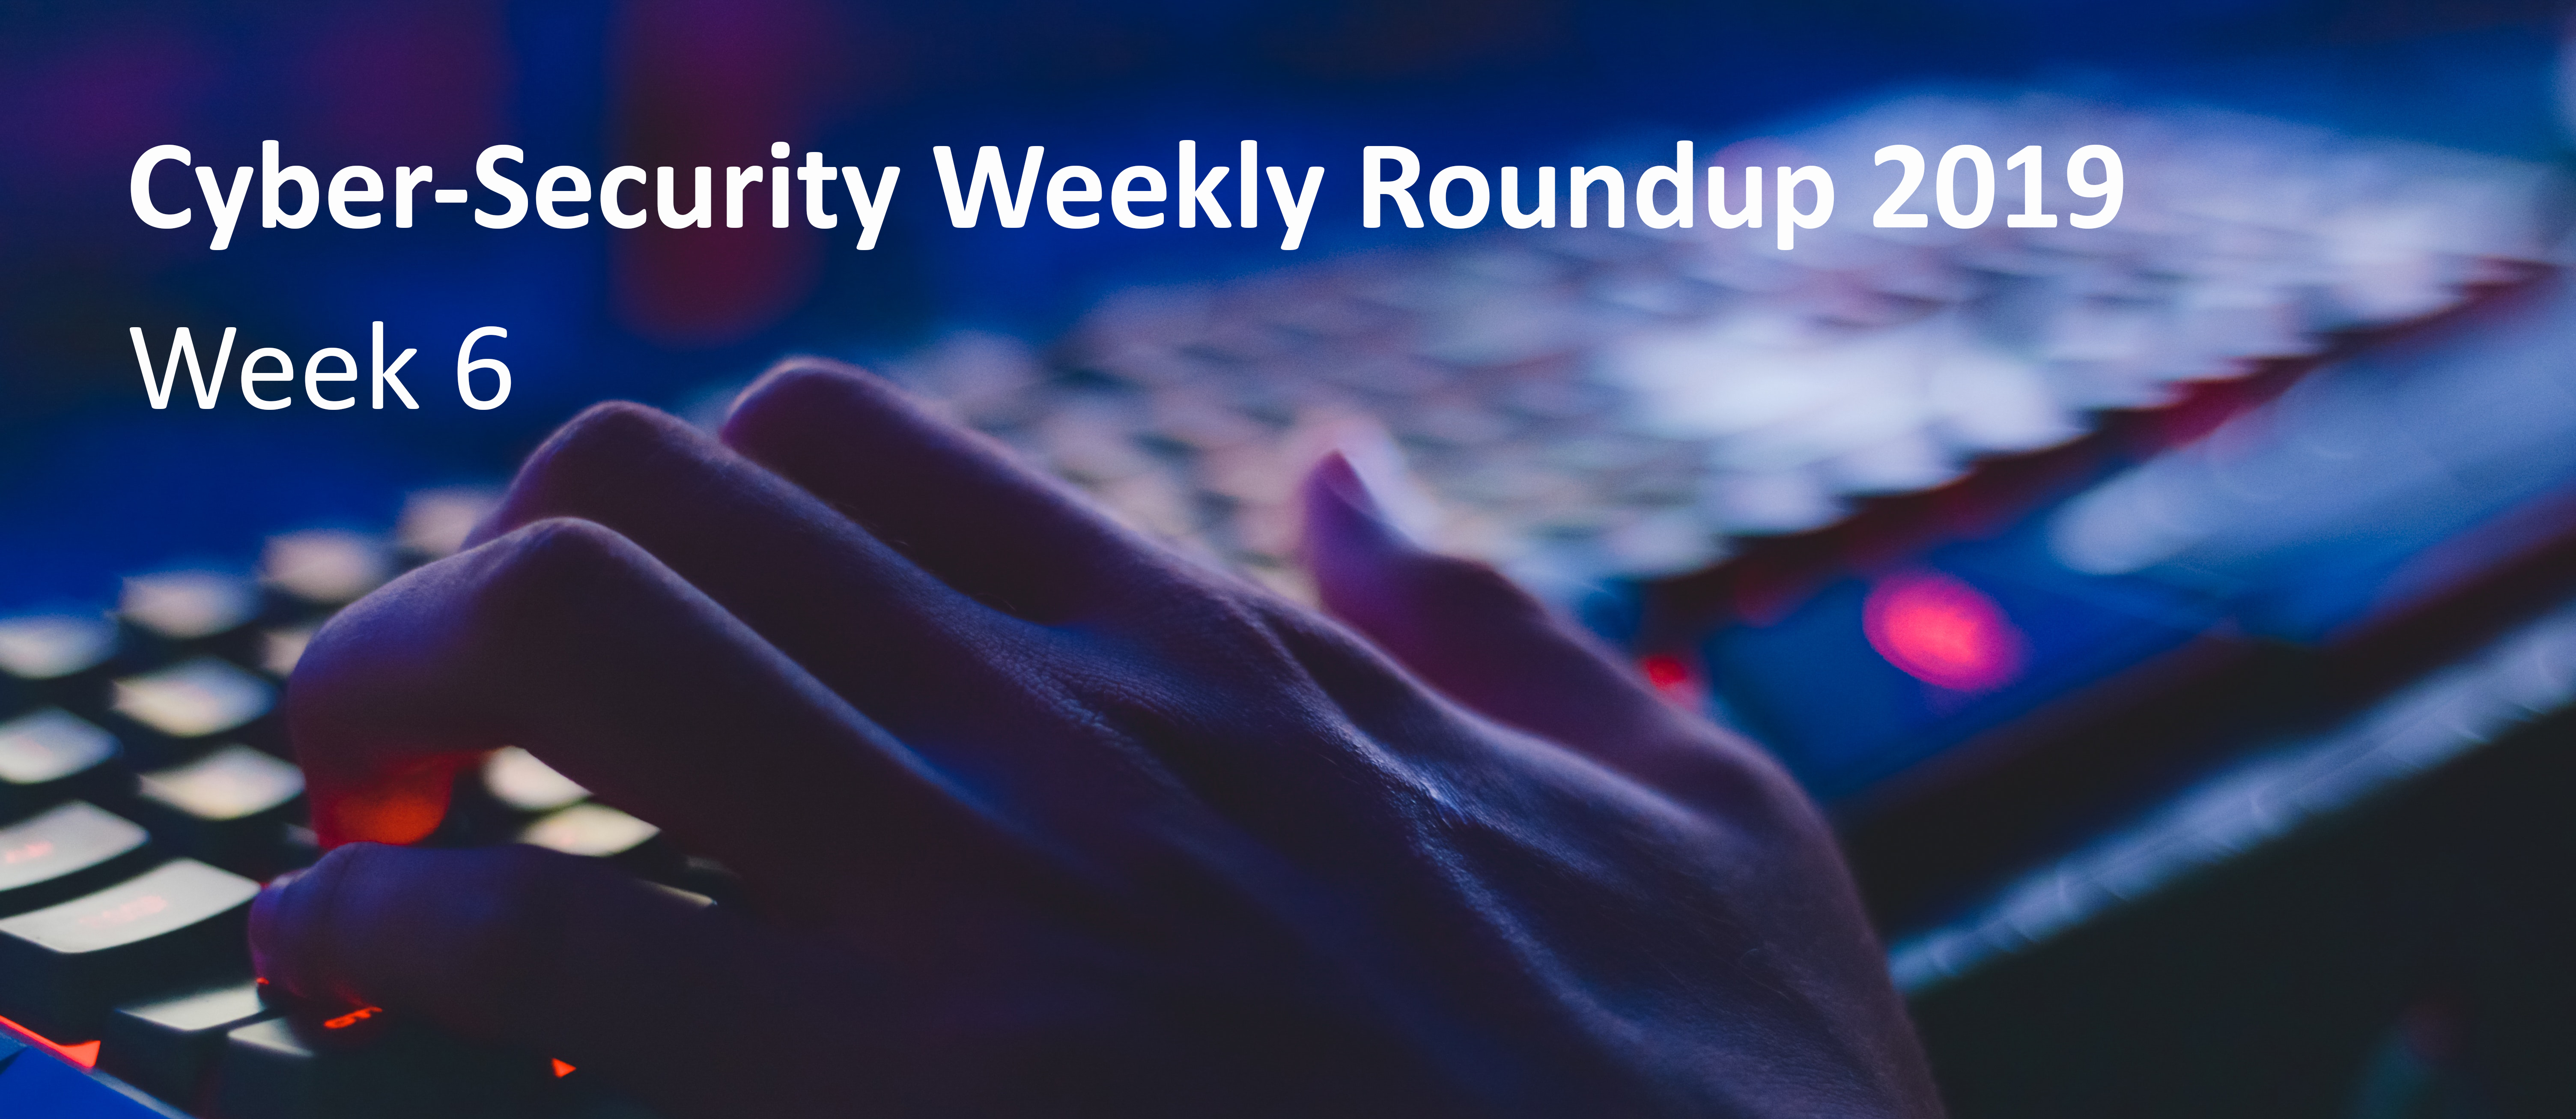 Cyber Attack Weekly Round Up wk 6